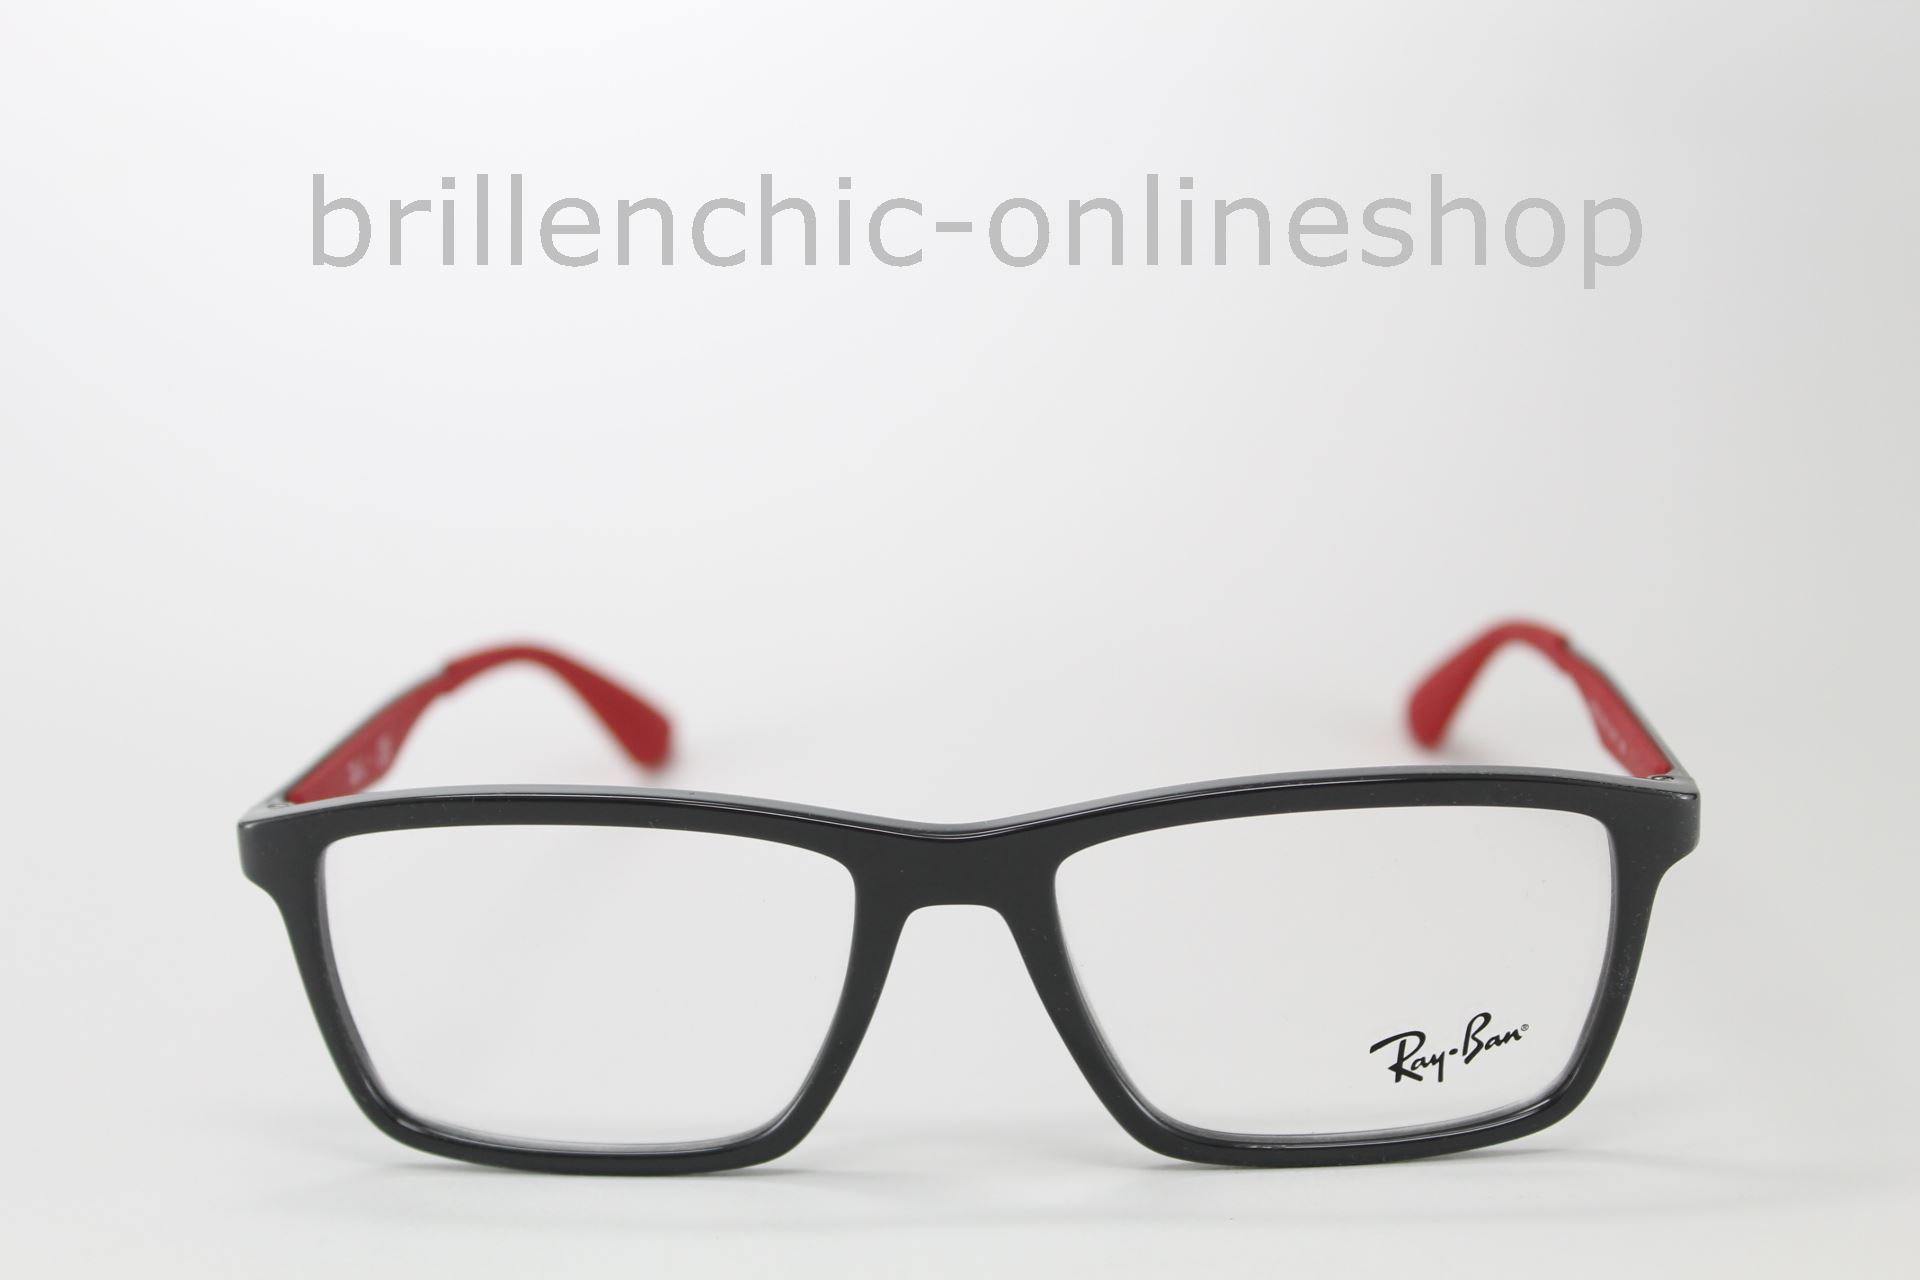 Brillenchic-onlineshop in Berlin - Ray Ban RB 7056 5418